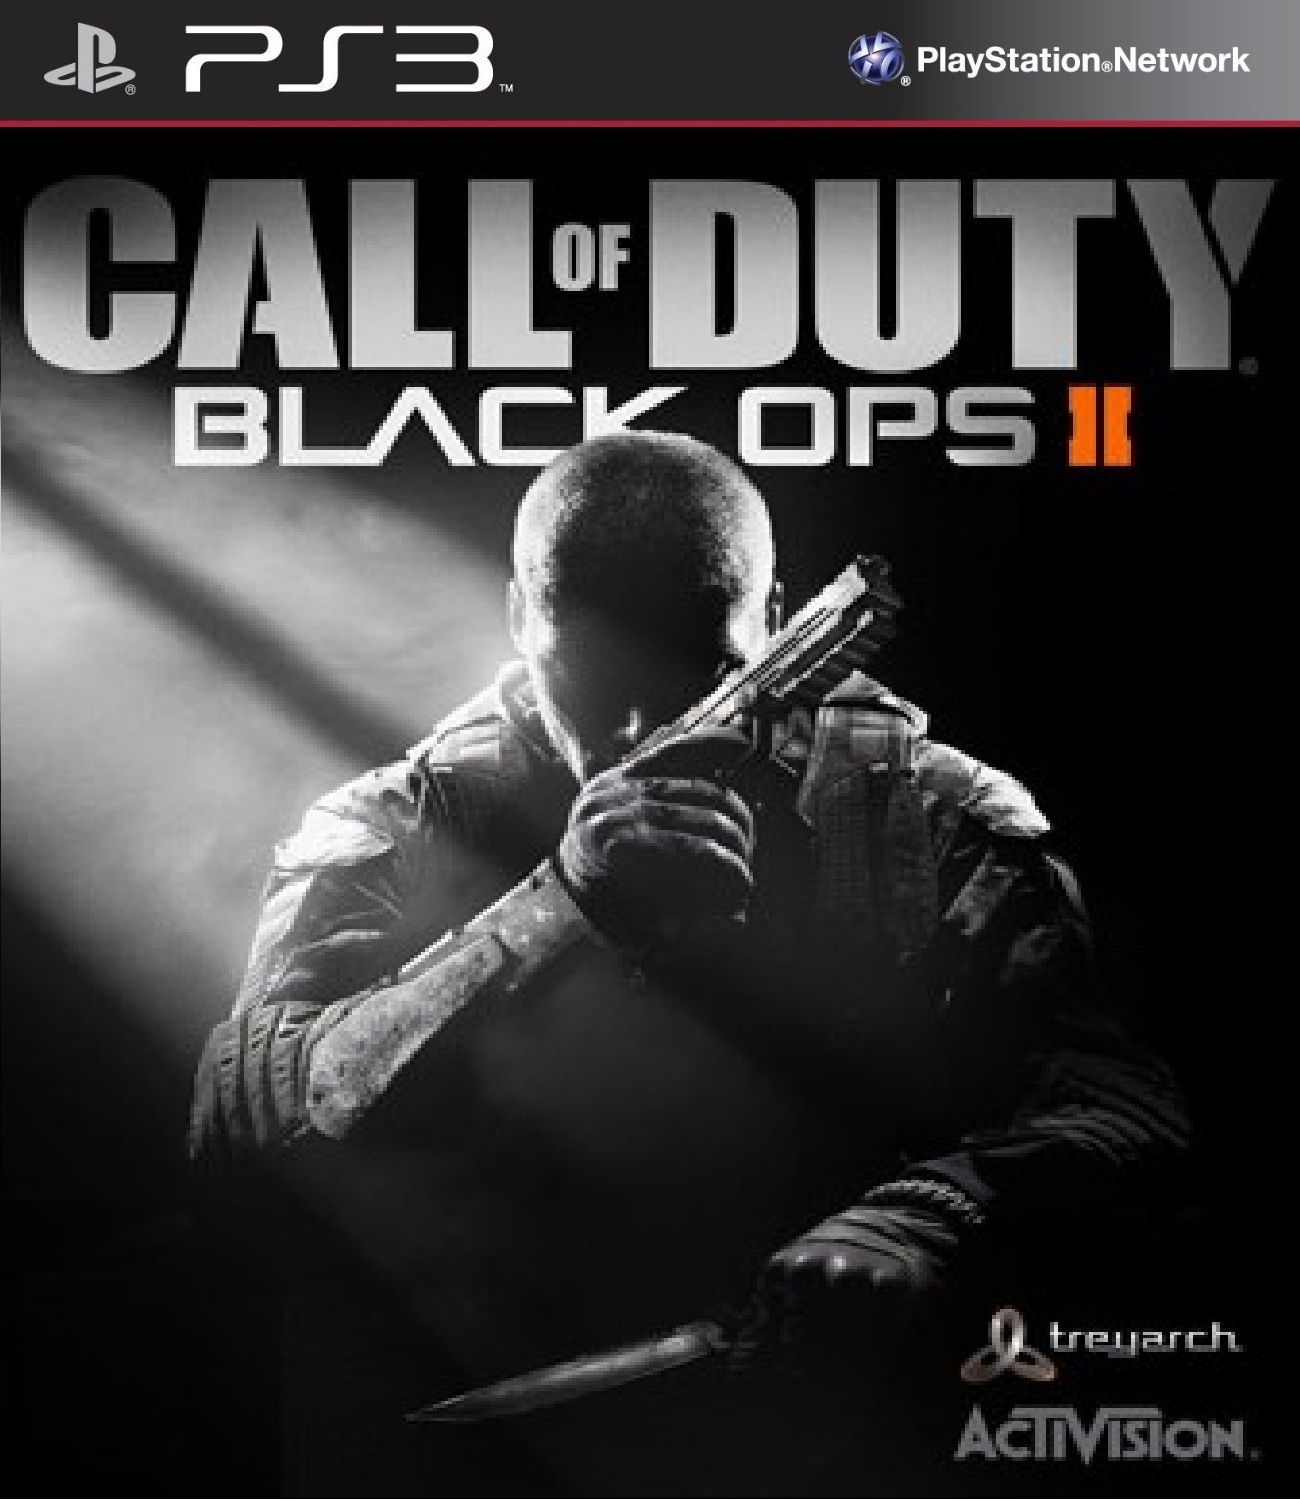 Call of Duty Black Ops prices (Playstation 3) are updated daily for each source listed above. The prices shown are the lowest prices available for Call of Duty Black Ops the last time we updated. The prices shown are the lowest prices available for Call of Duty Black Ops the last time we updated.